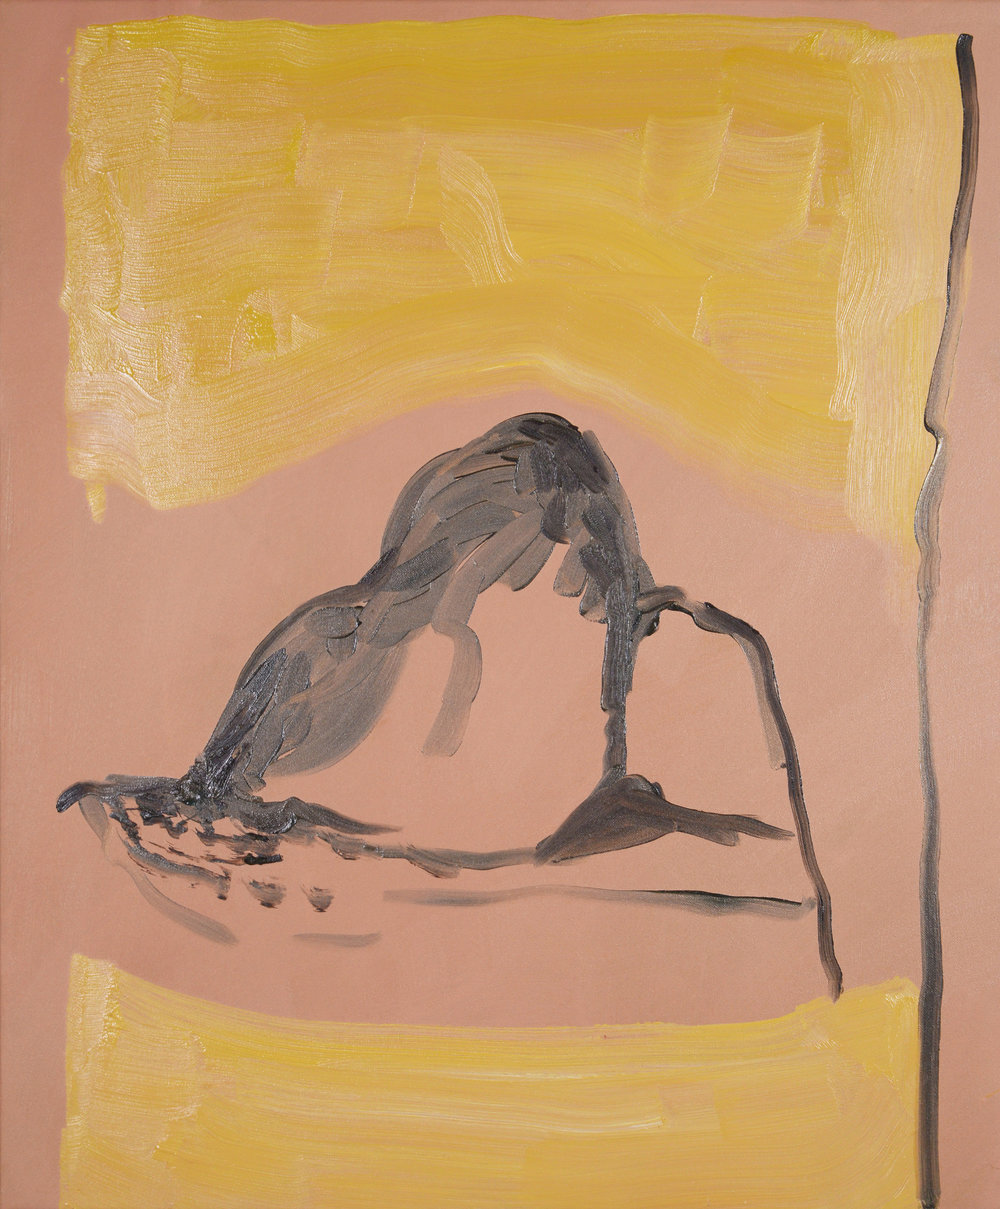 Bather, 2013, Oil on canvas, 60 x 50 cm